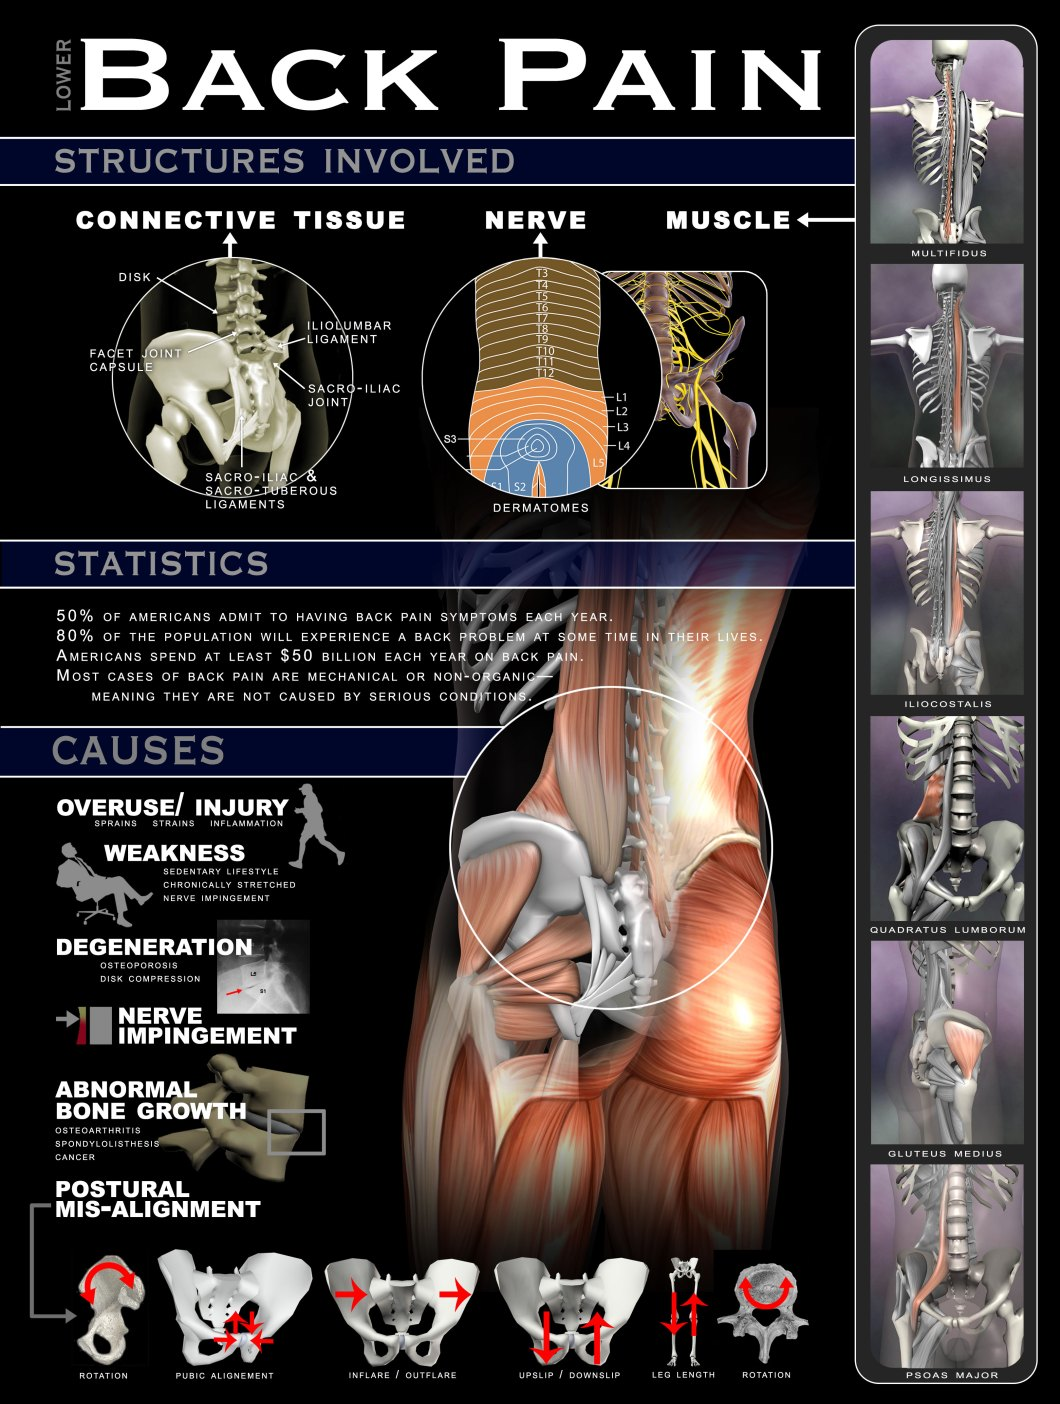 Lower Back Pain: Why, How and Where - Infographic